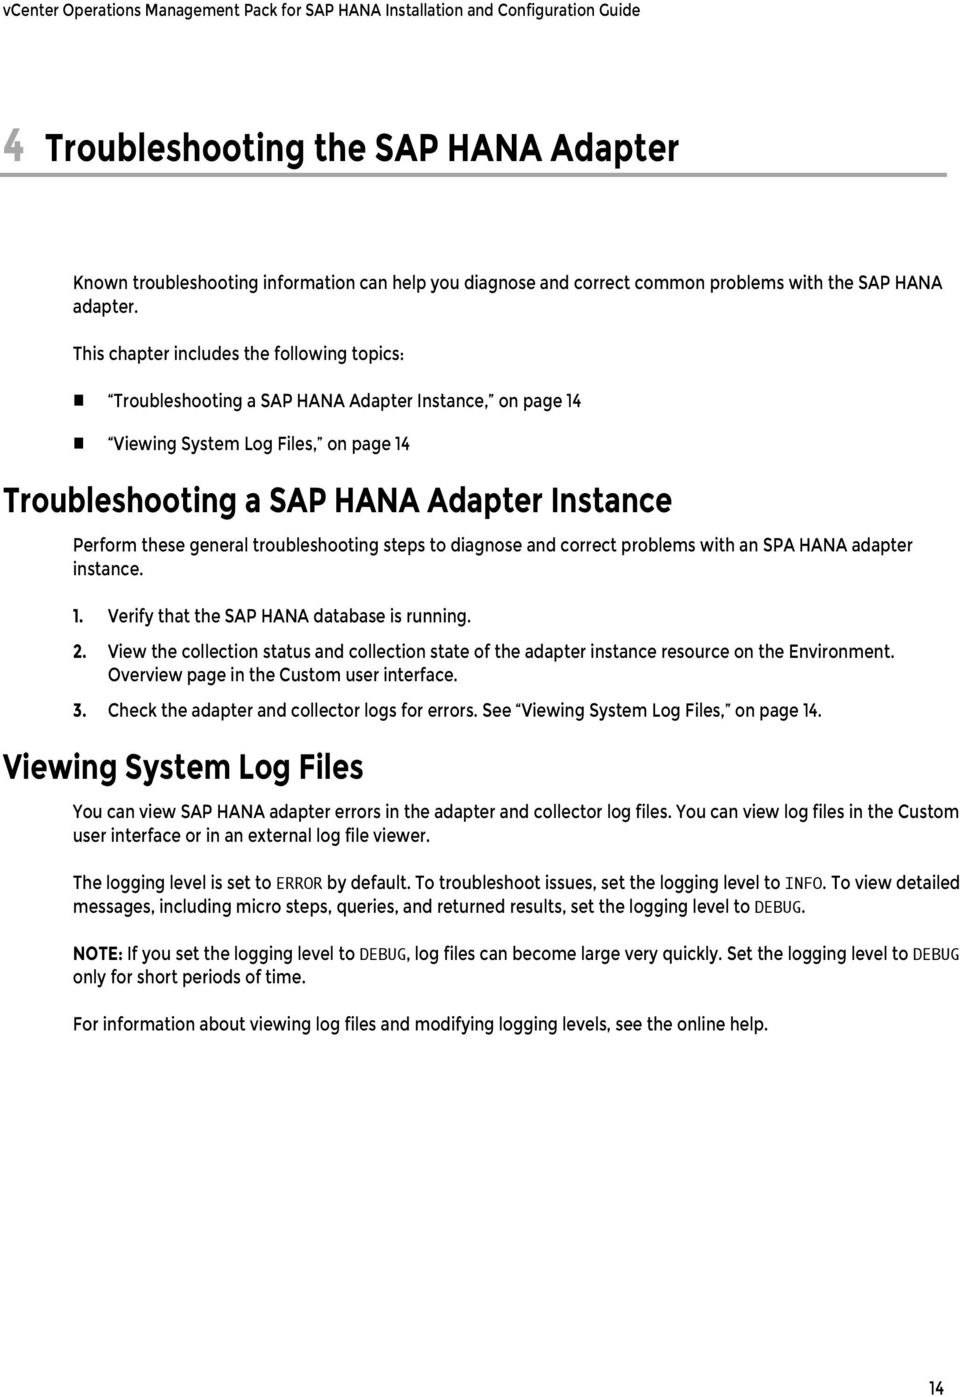 This chapter includes the following topics: Troubleshooting a SAP HANA Adapter Instance, on page 14 Viewing System Log Files, on page 14 Troubleshooting a SAP HANA Adapter Instance Perform these